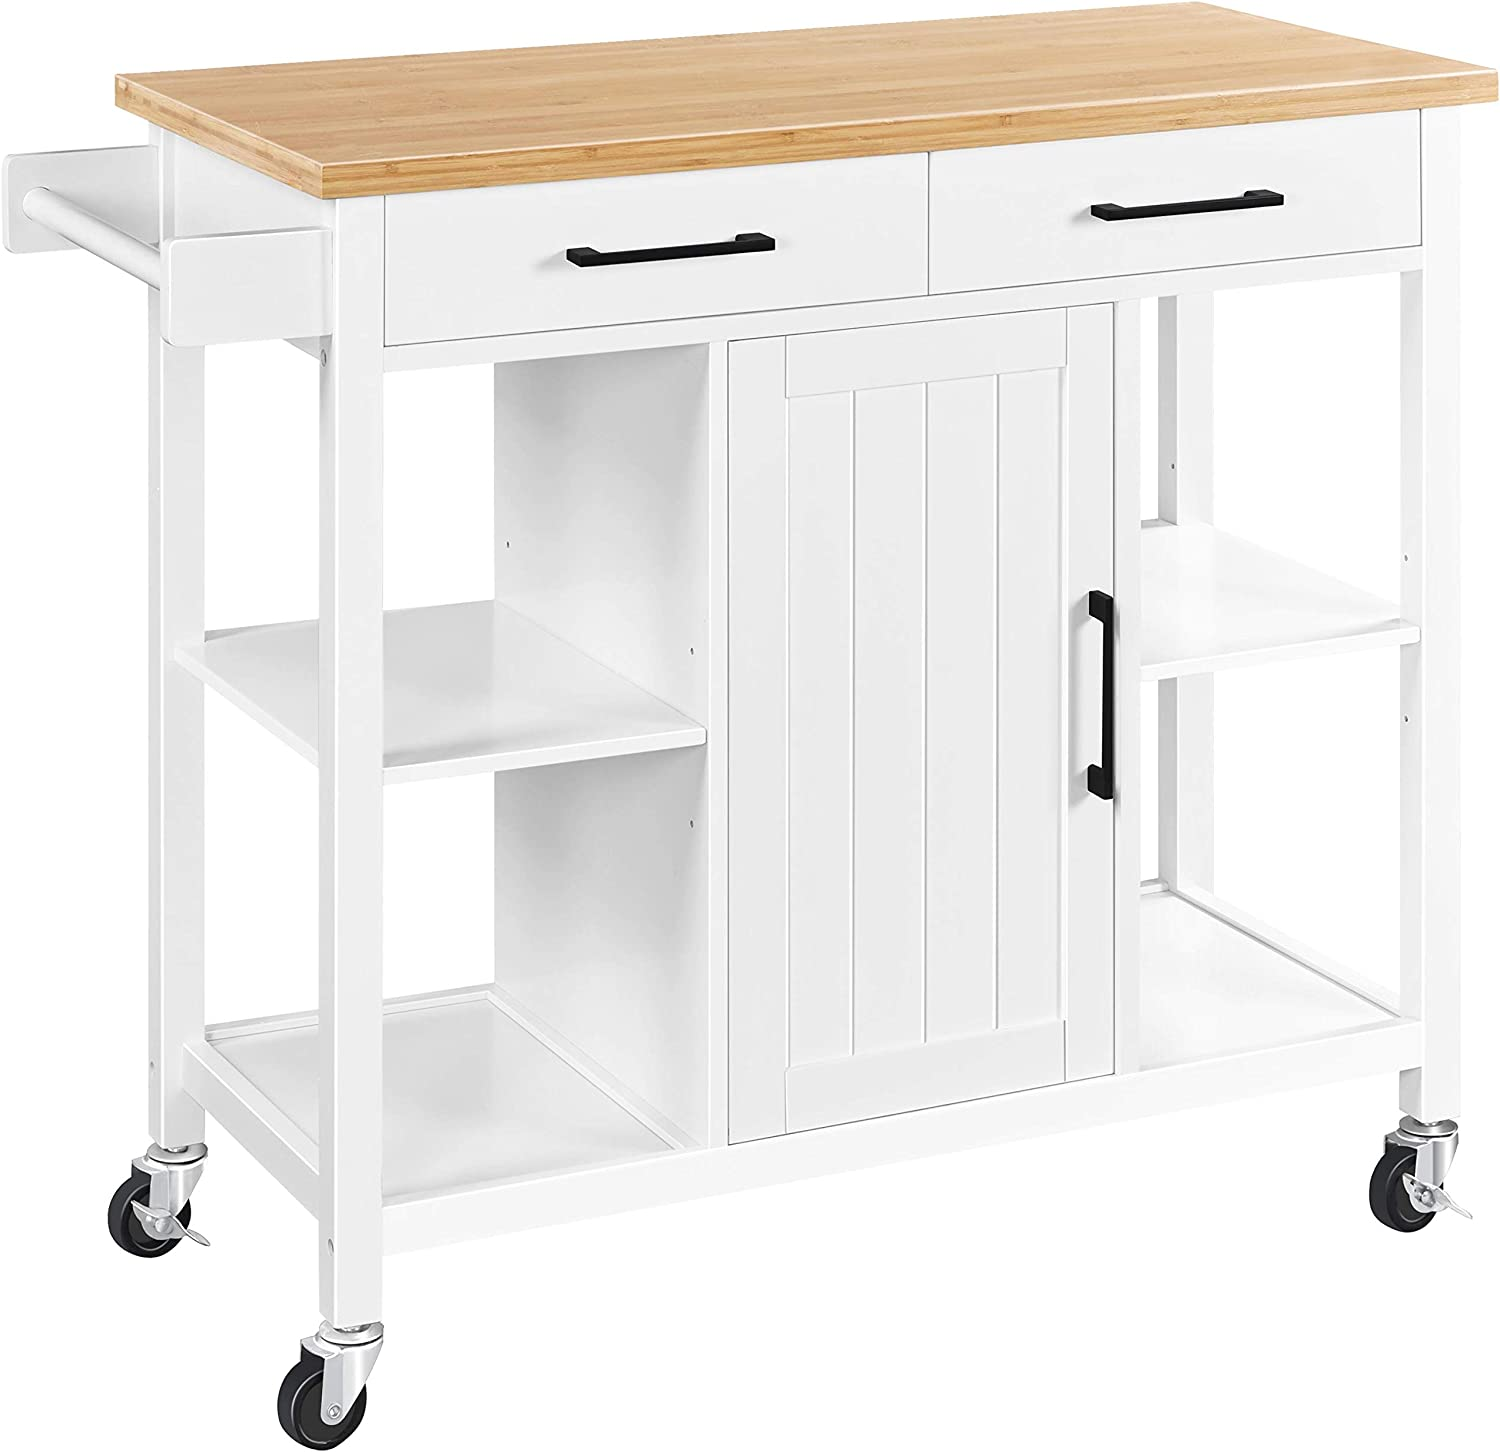 YAHEETECH Kitchen Cart Ranking TOP10 On Wheels with OFFicial store Cabi and 2 Storage Drawers